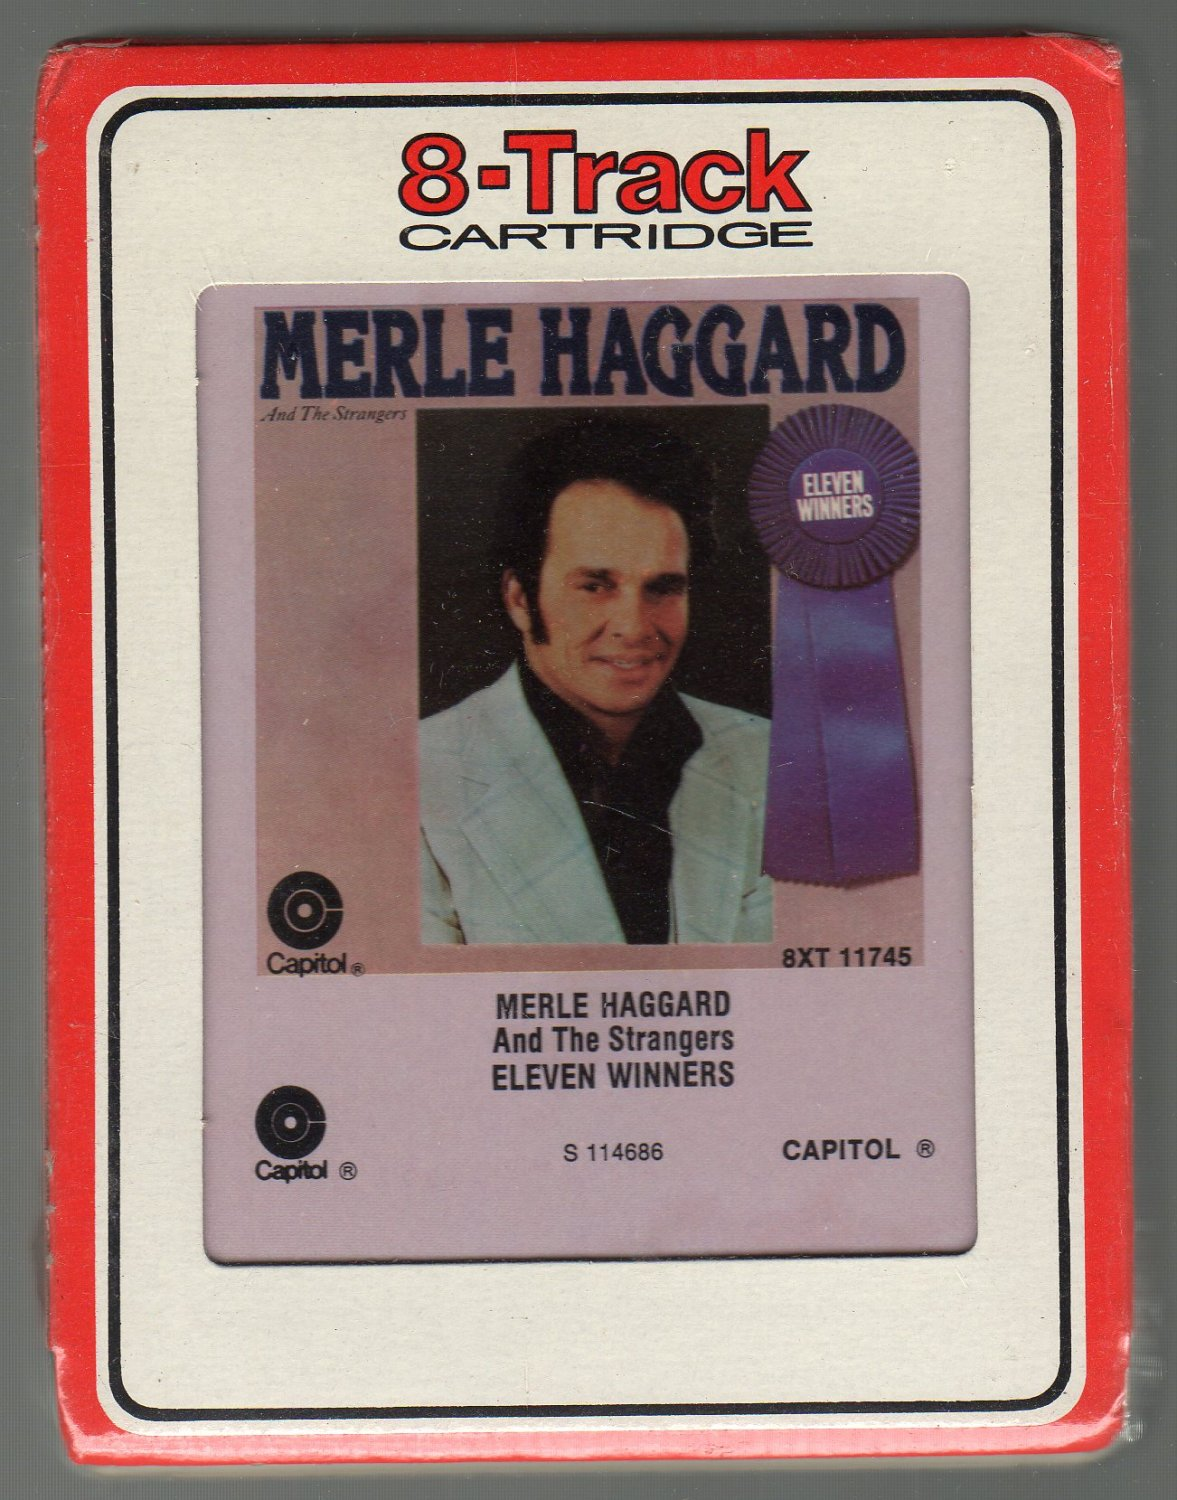 Merle Haggard And The Strangers - ELEVEN WINNERS Sealed RCA 8-track tape